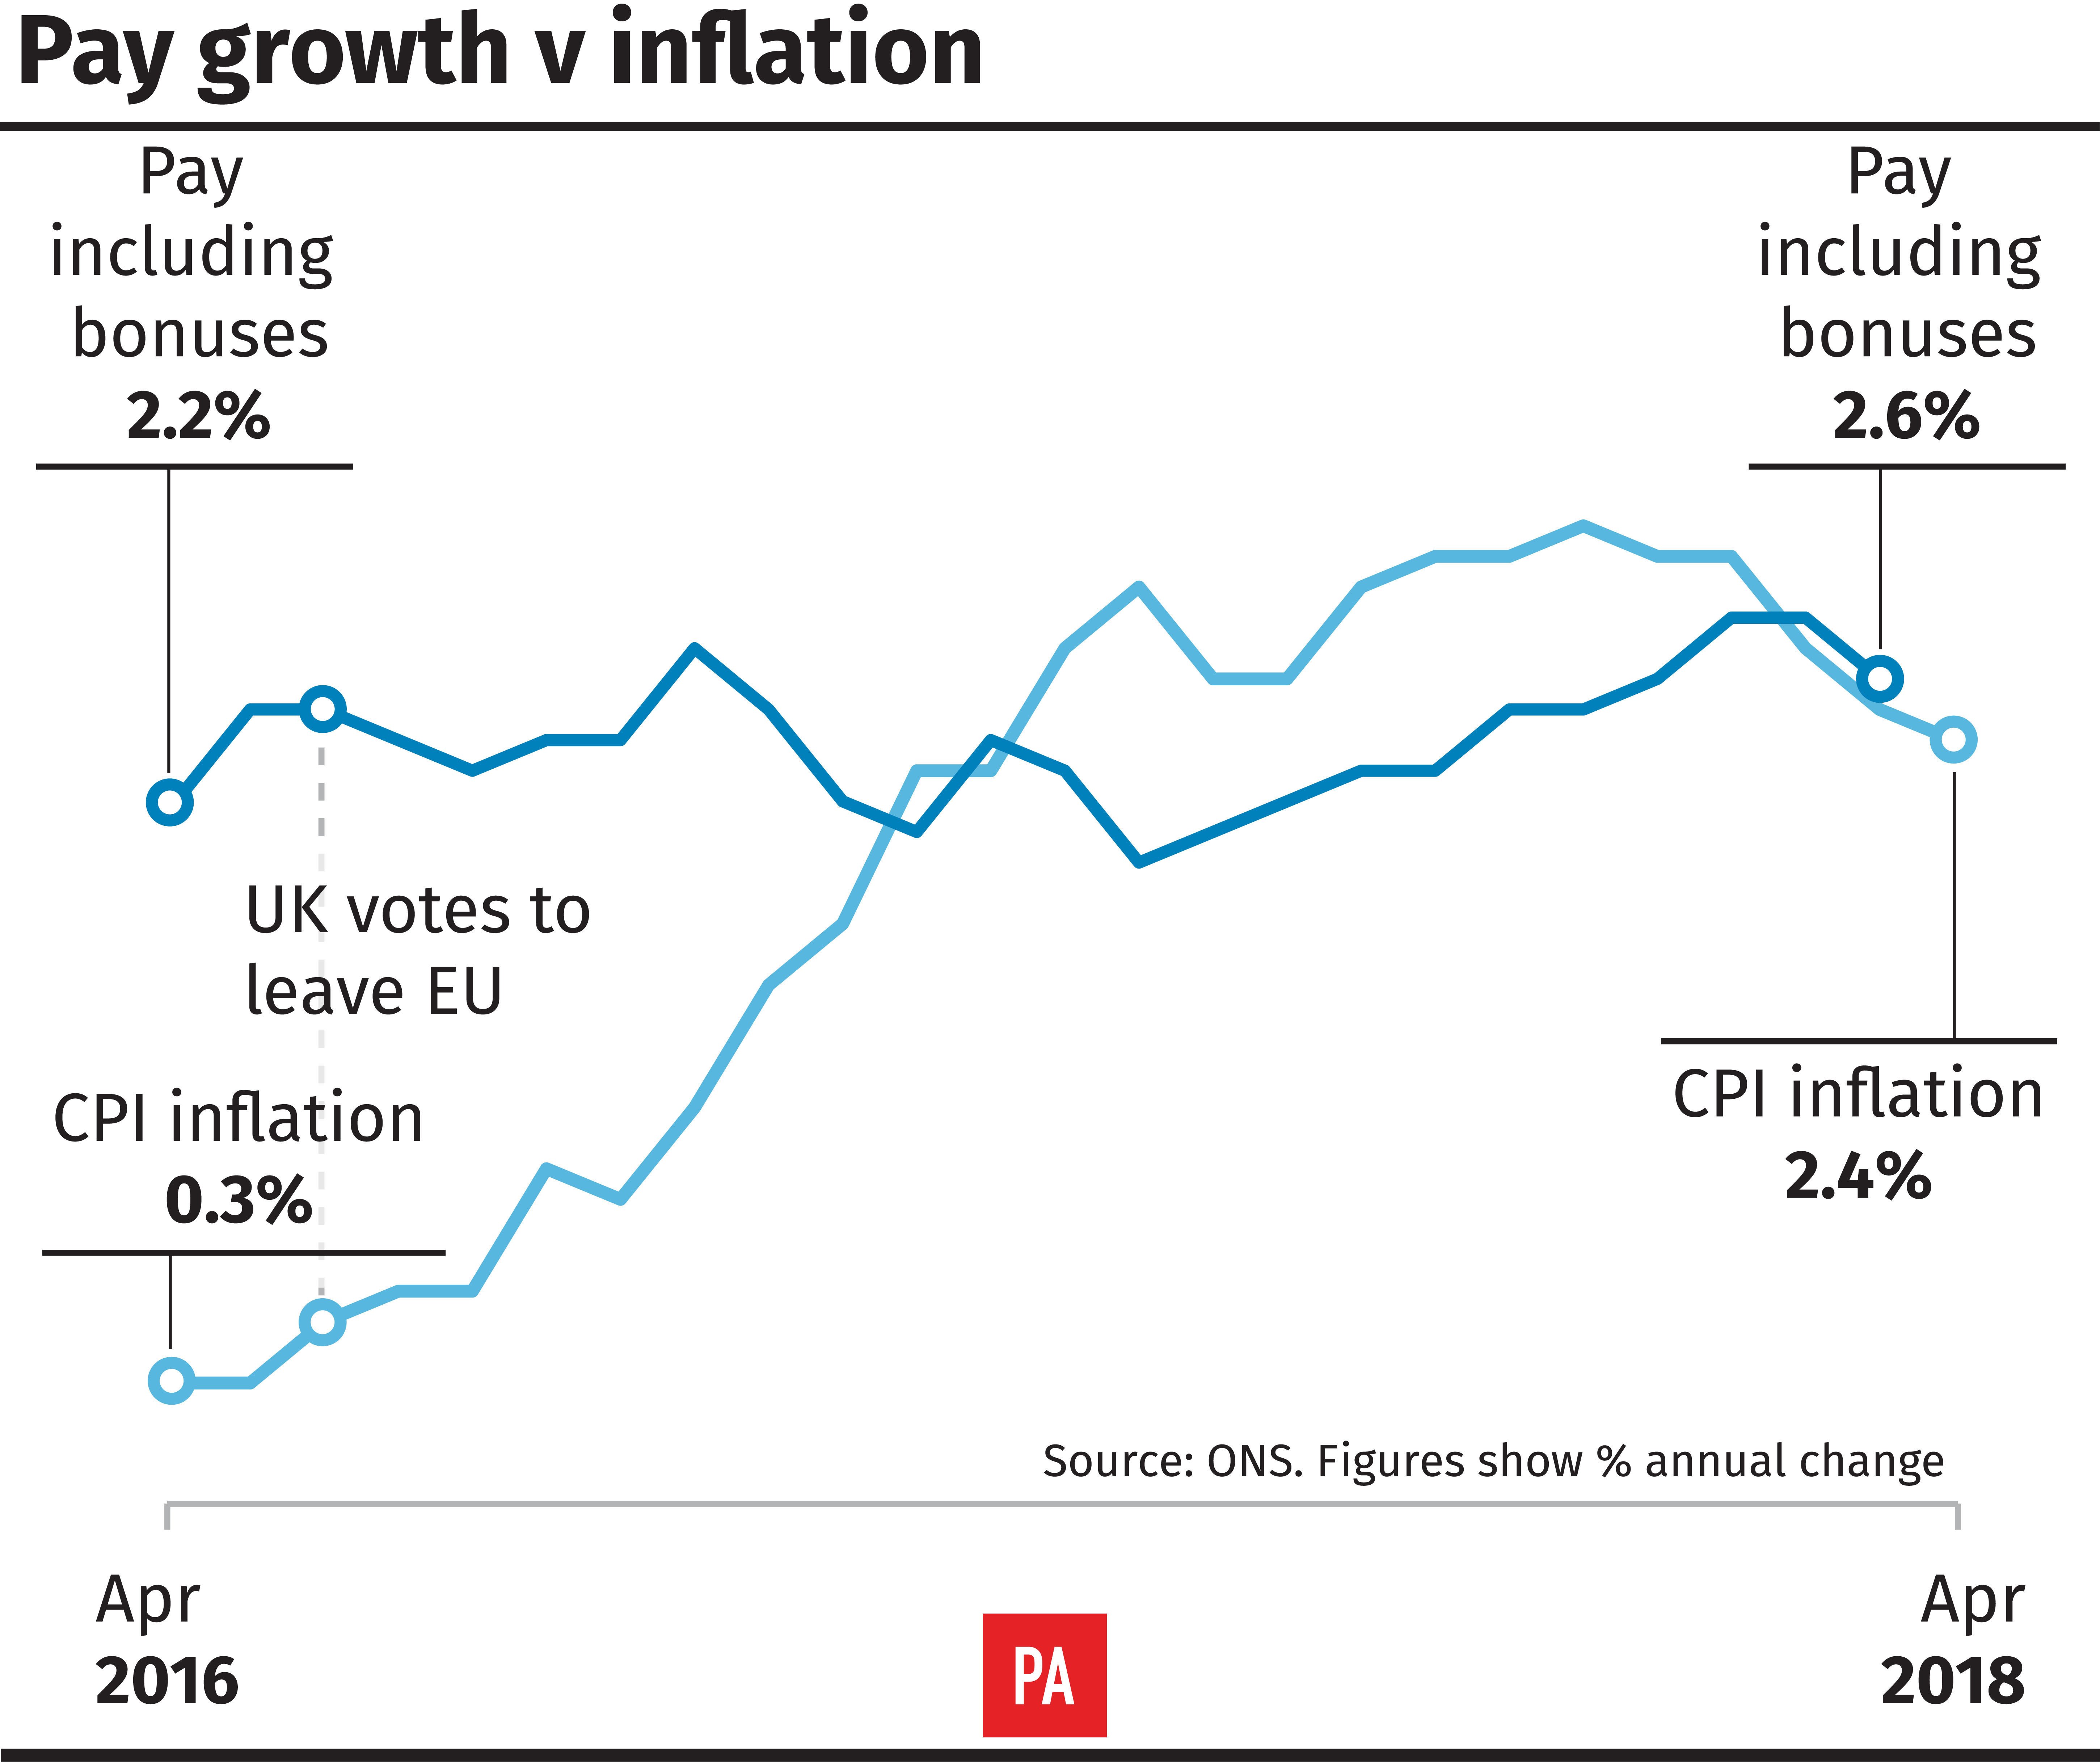 Pay growth v inflation (PA Graphics)